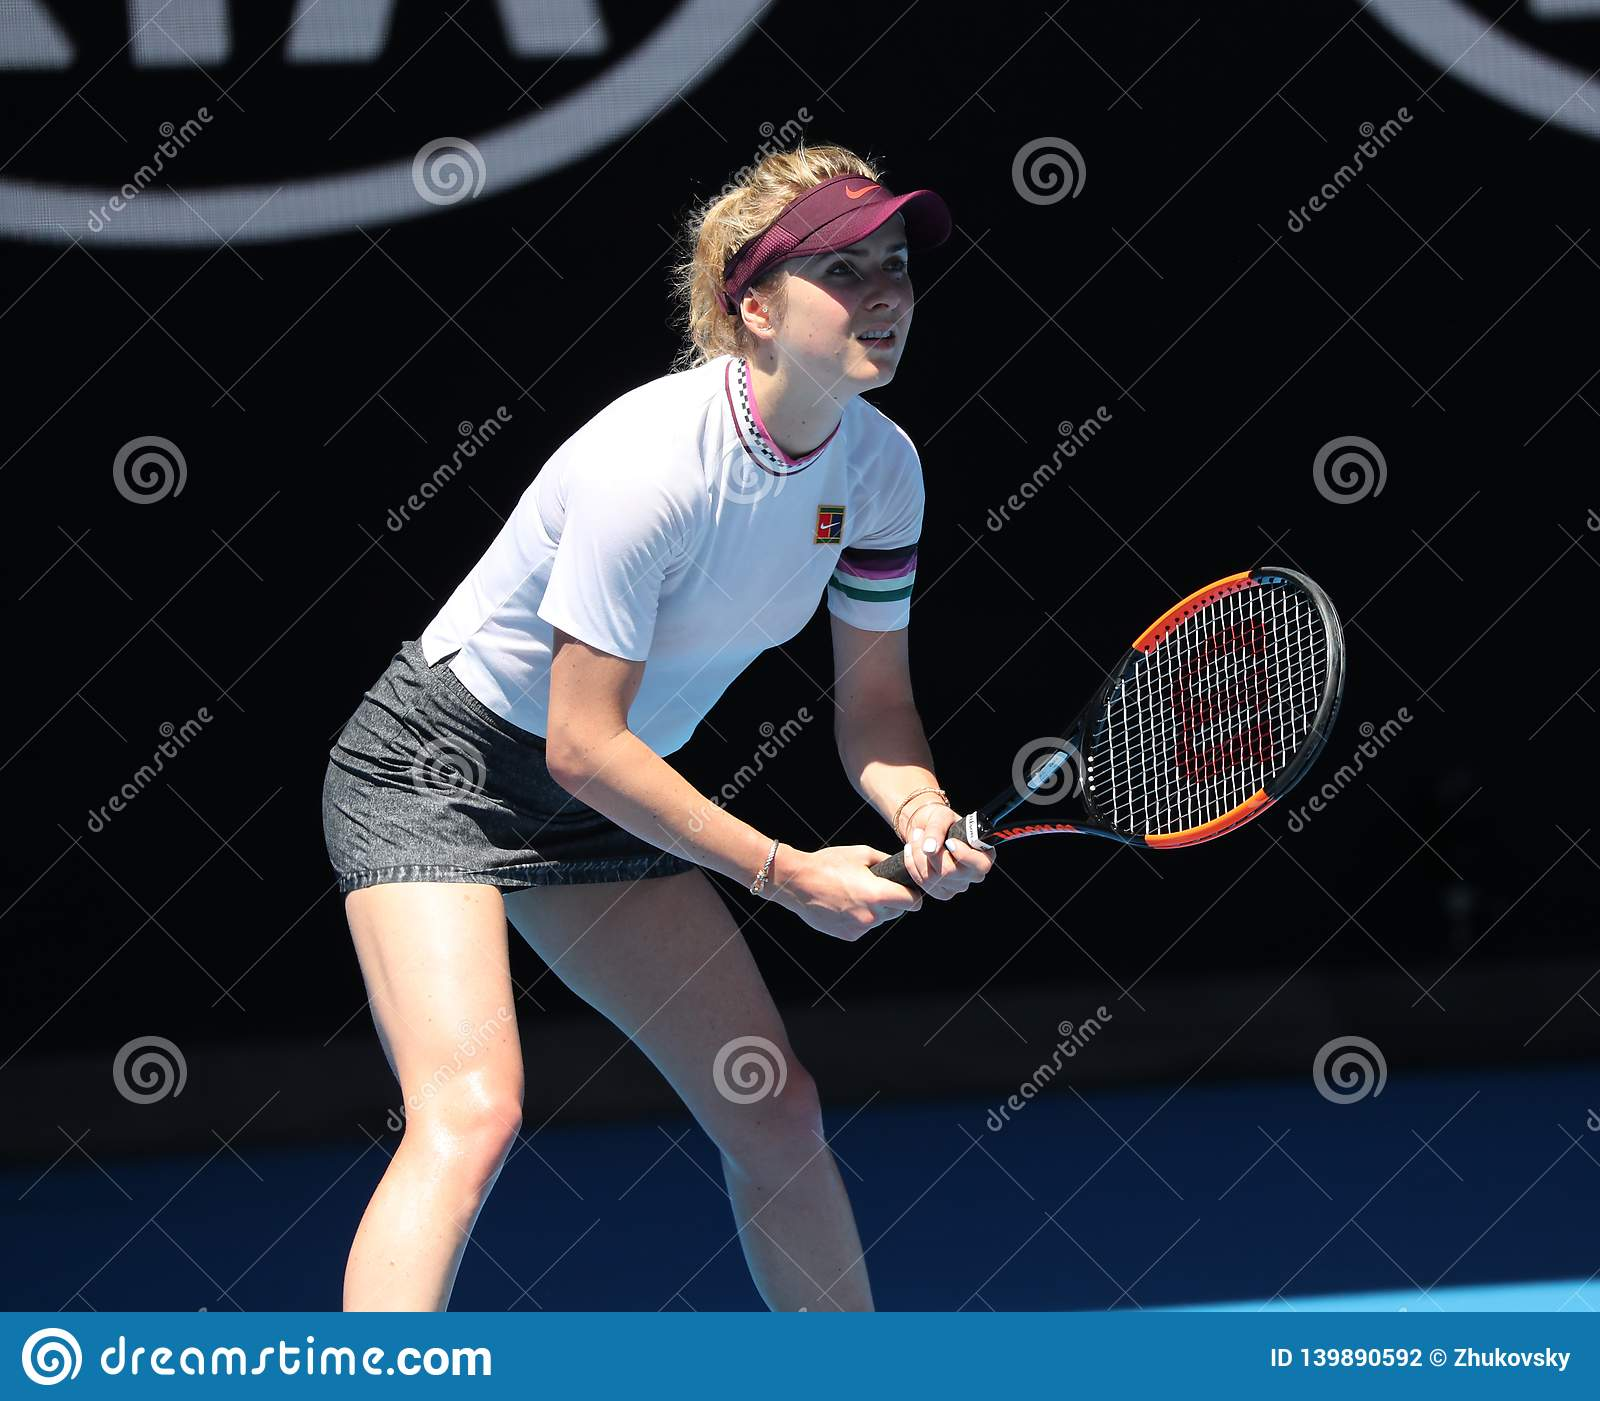 Professional tennis player Elina Svitolina of Ukraine in action during her quarterfinal match at 2019 Australian Open in Melbourne